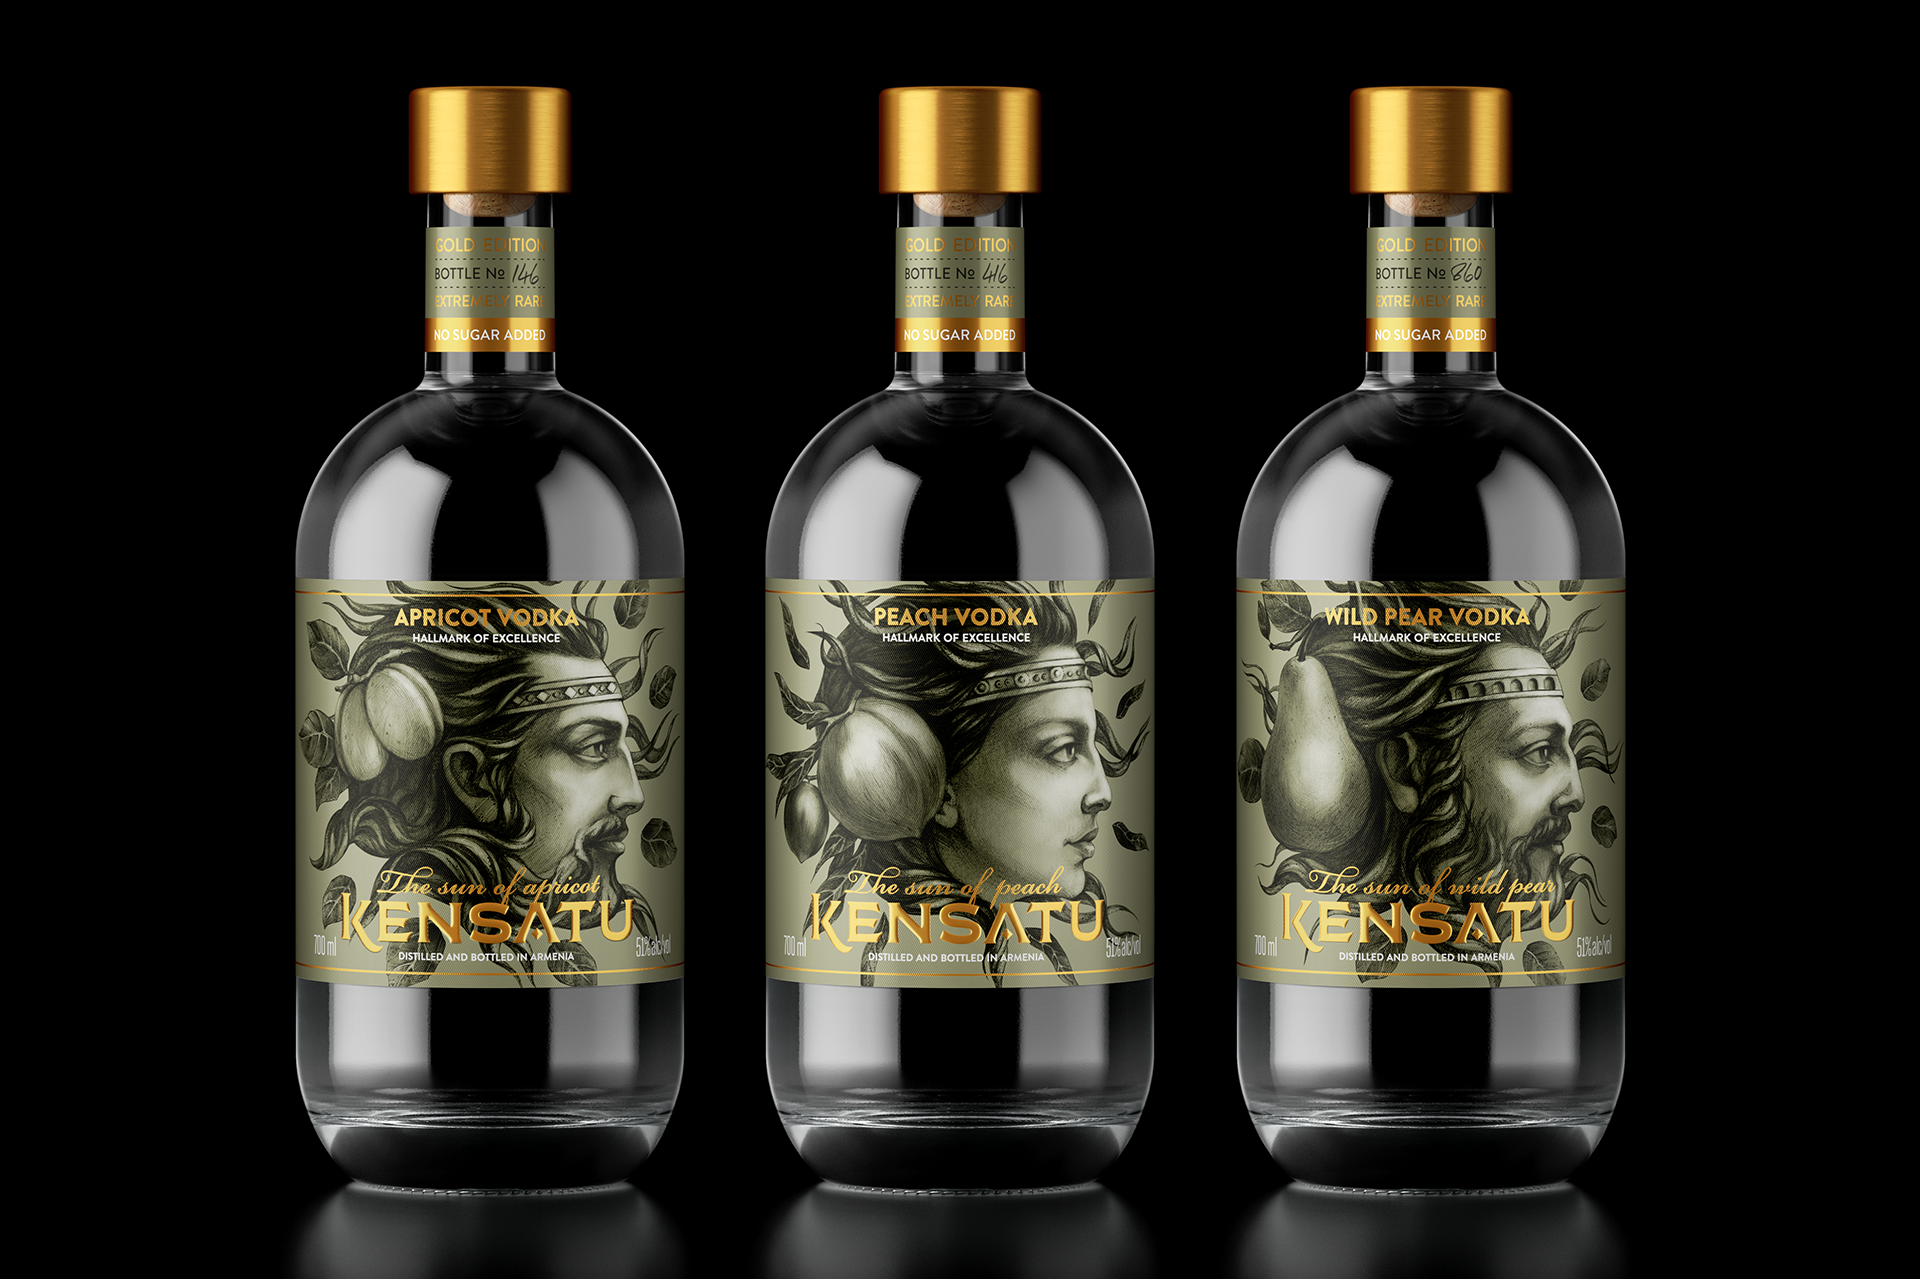 Armenian Premium Vodka Packaging Design with Hand Drawing Characters / World Brand & Packaging Design Society